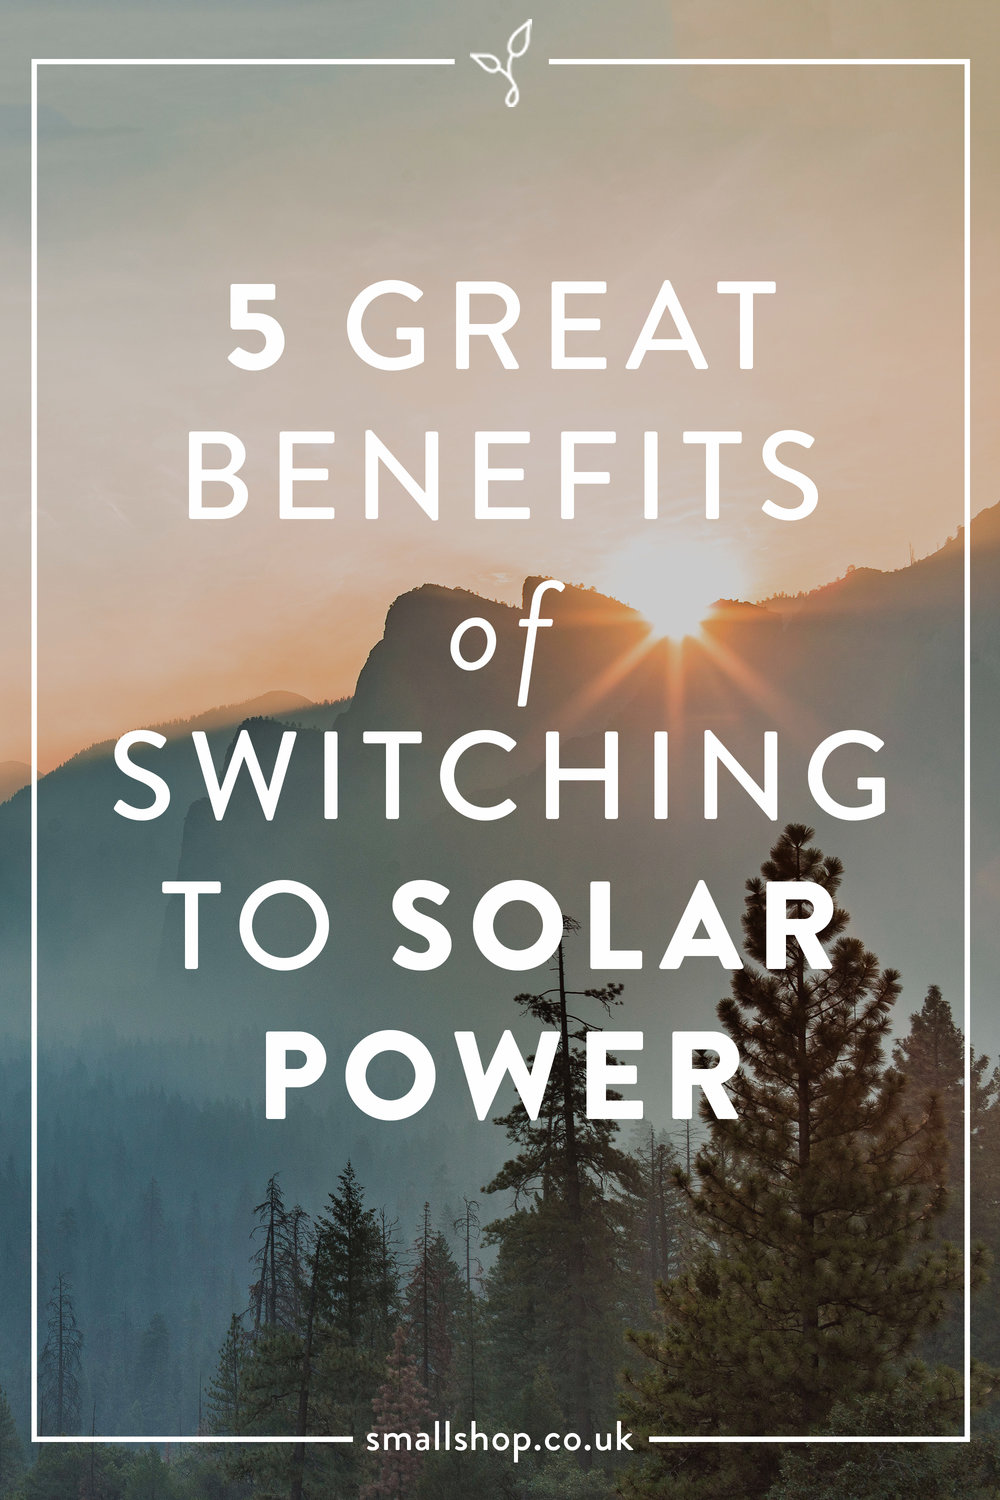 5 Great Benefits of Switching to Solar Power